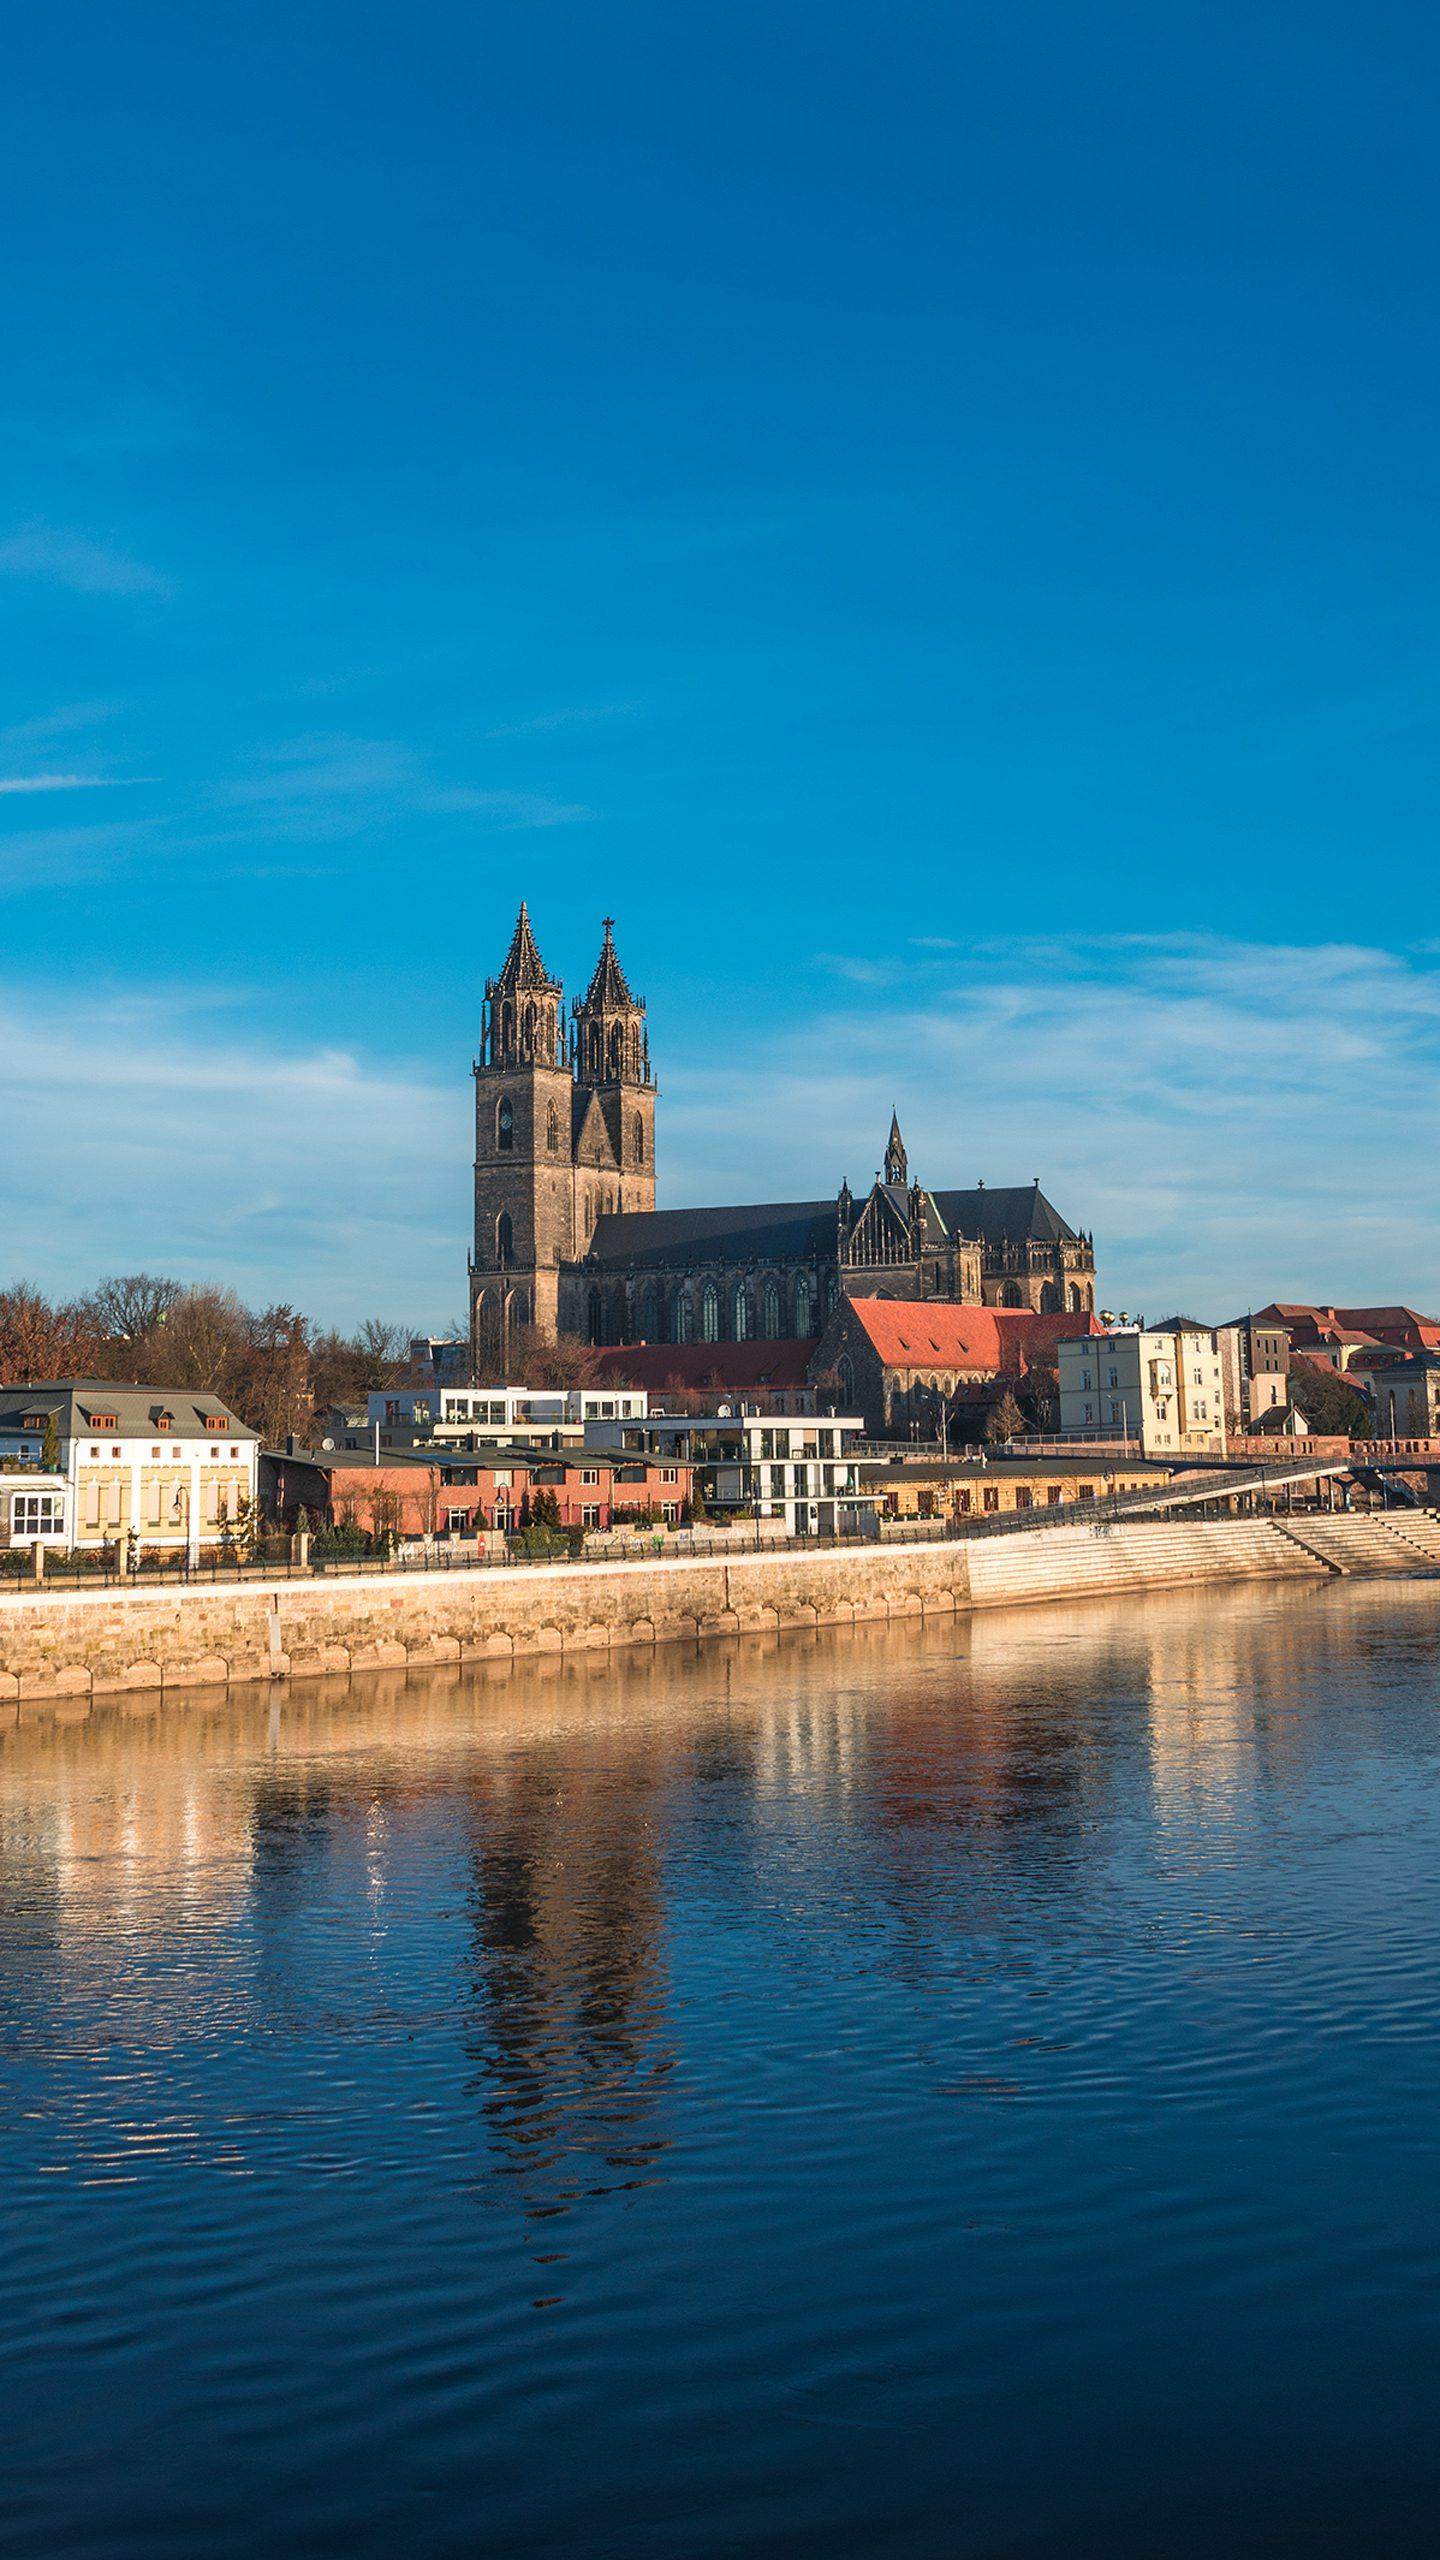 Germany - Magdeburg. The preserved buildings of each period form a new and old overlap, presenting a diverse style.